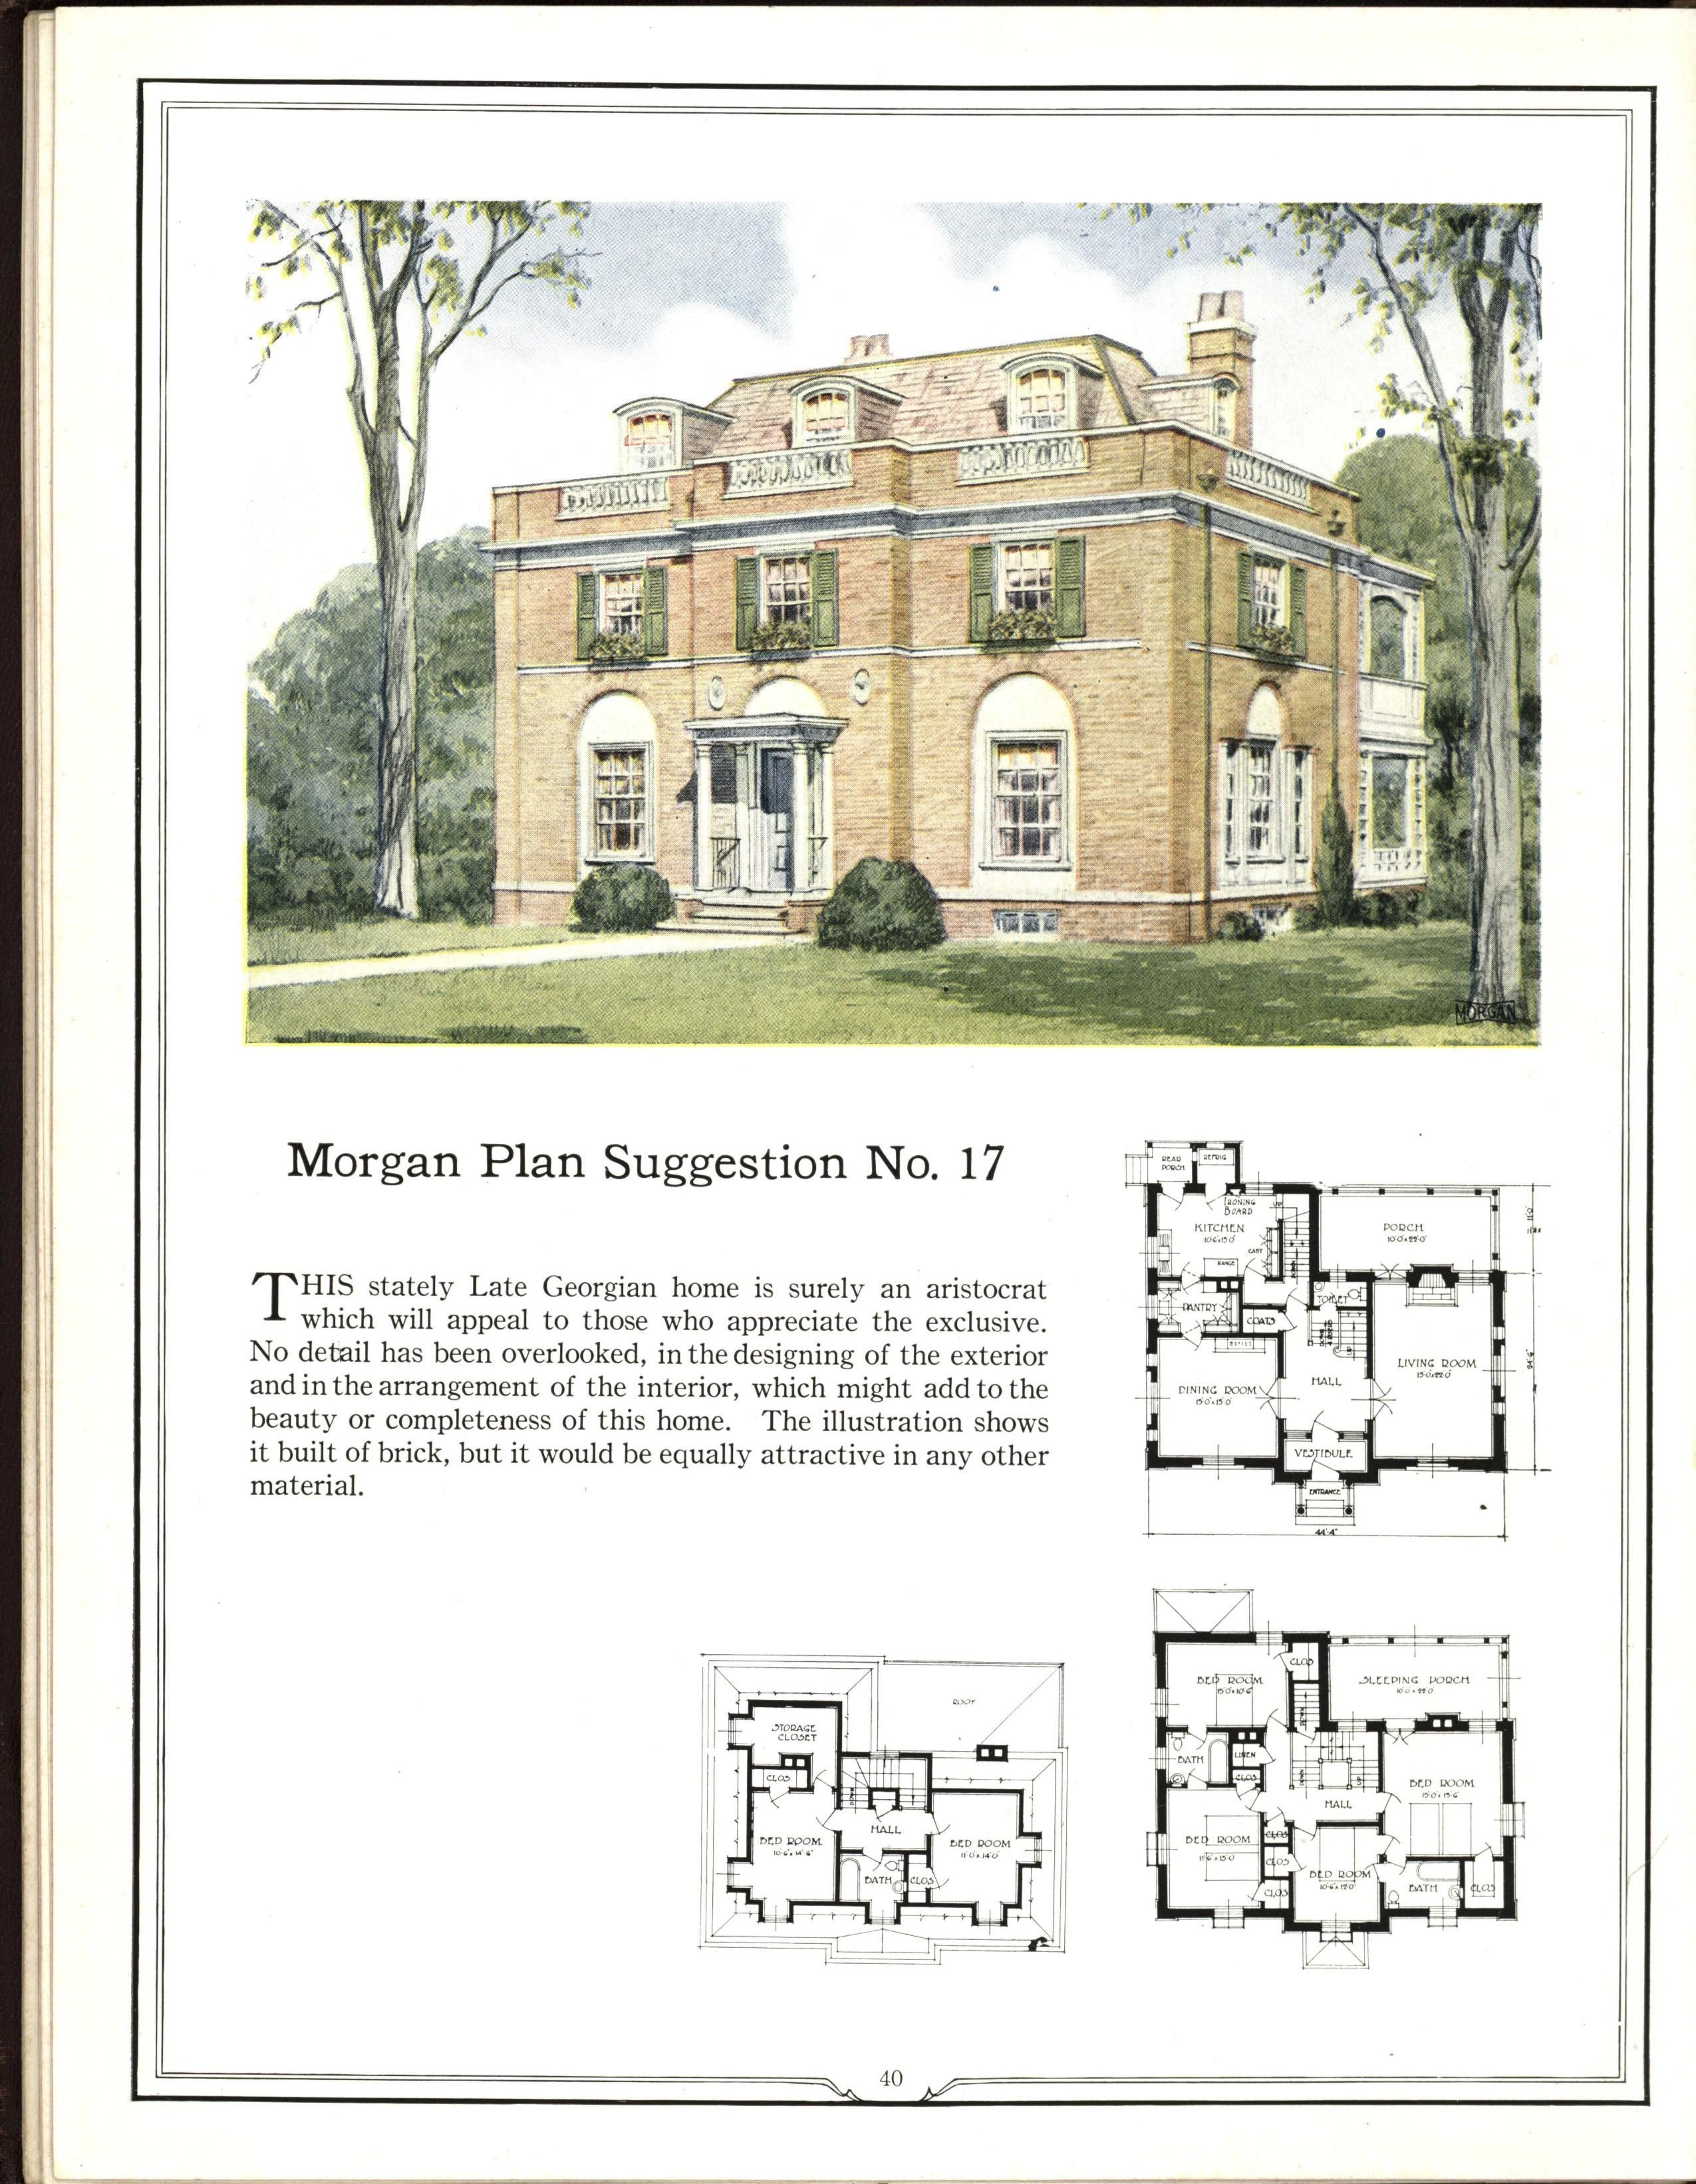 Impressive 3 Story Georgian Style House Plan Easily Adaptable To Modern Living Georgian House Plan House Plans Vintage House Plans How To Plan